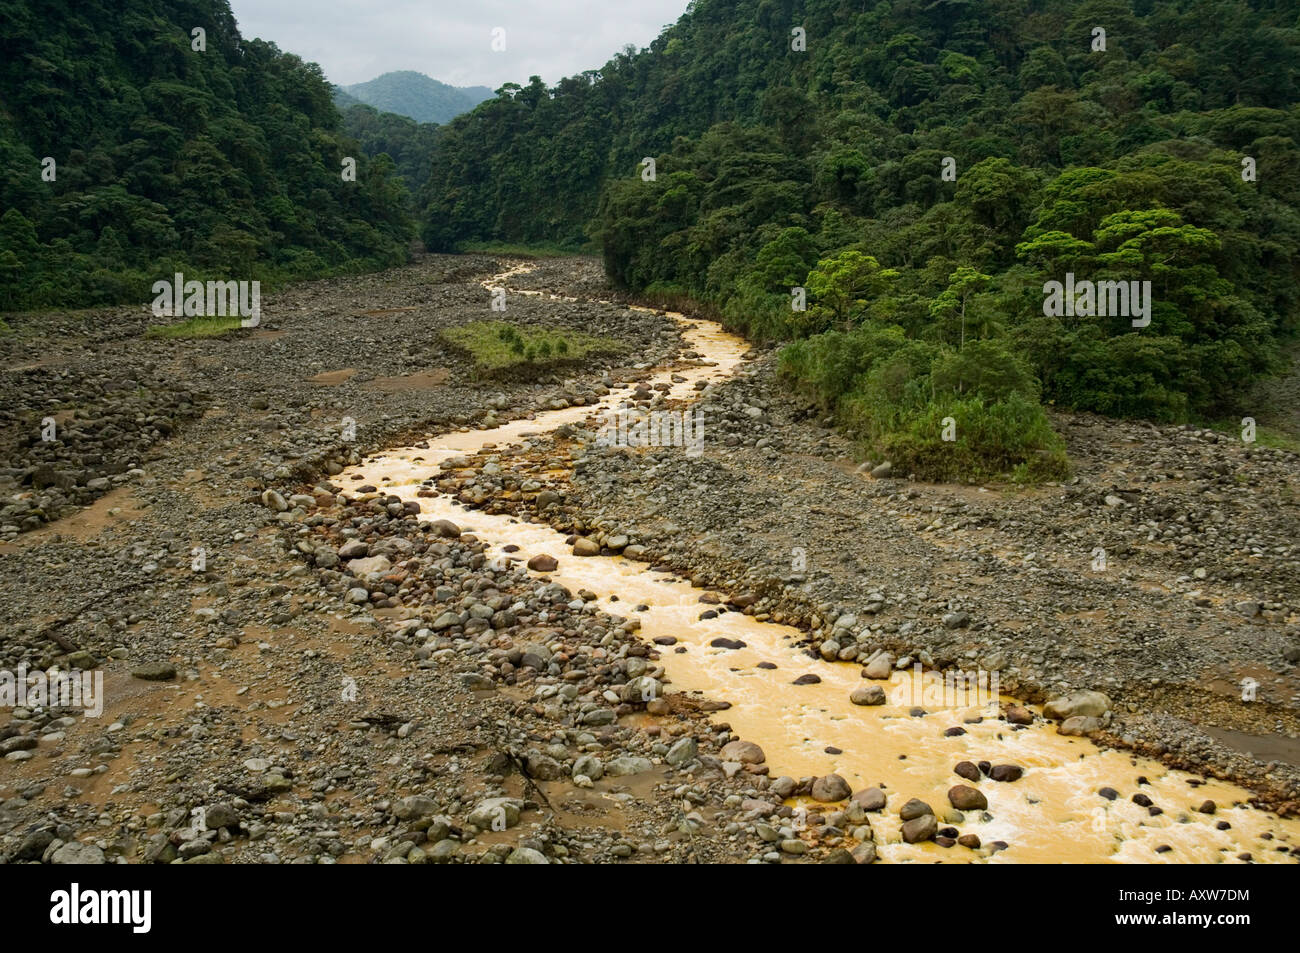 Brown water flowing from river fed with volcanic silt, Costa Rica - Stock Image